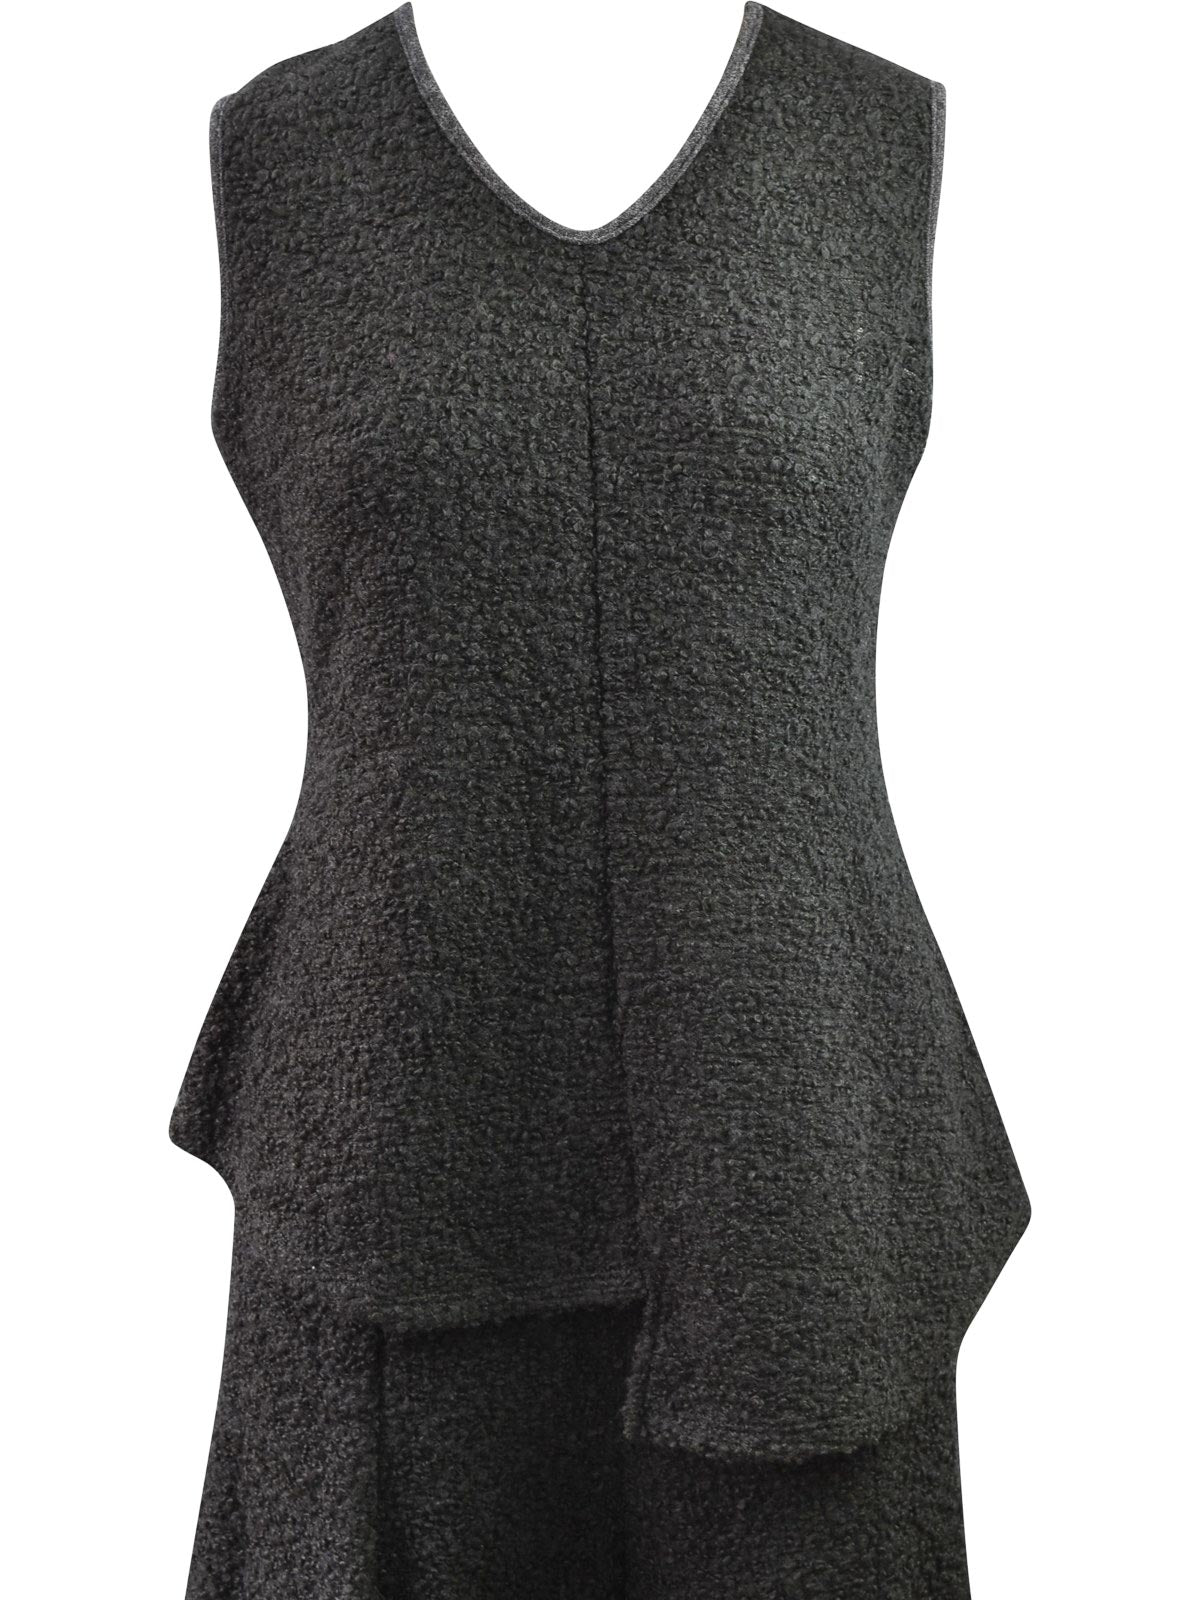 Khangura Boucle Asymmetric Tank Top, Black